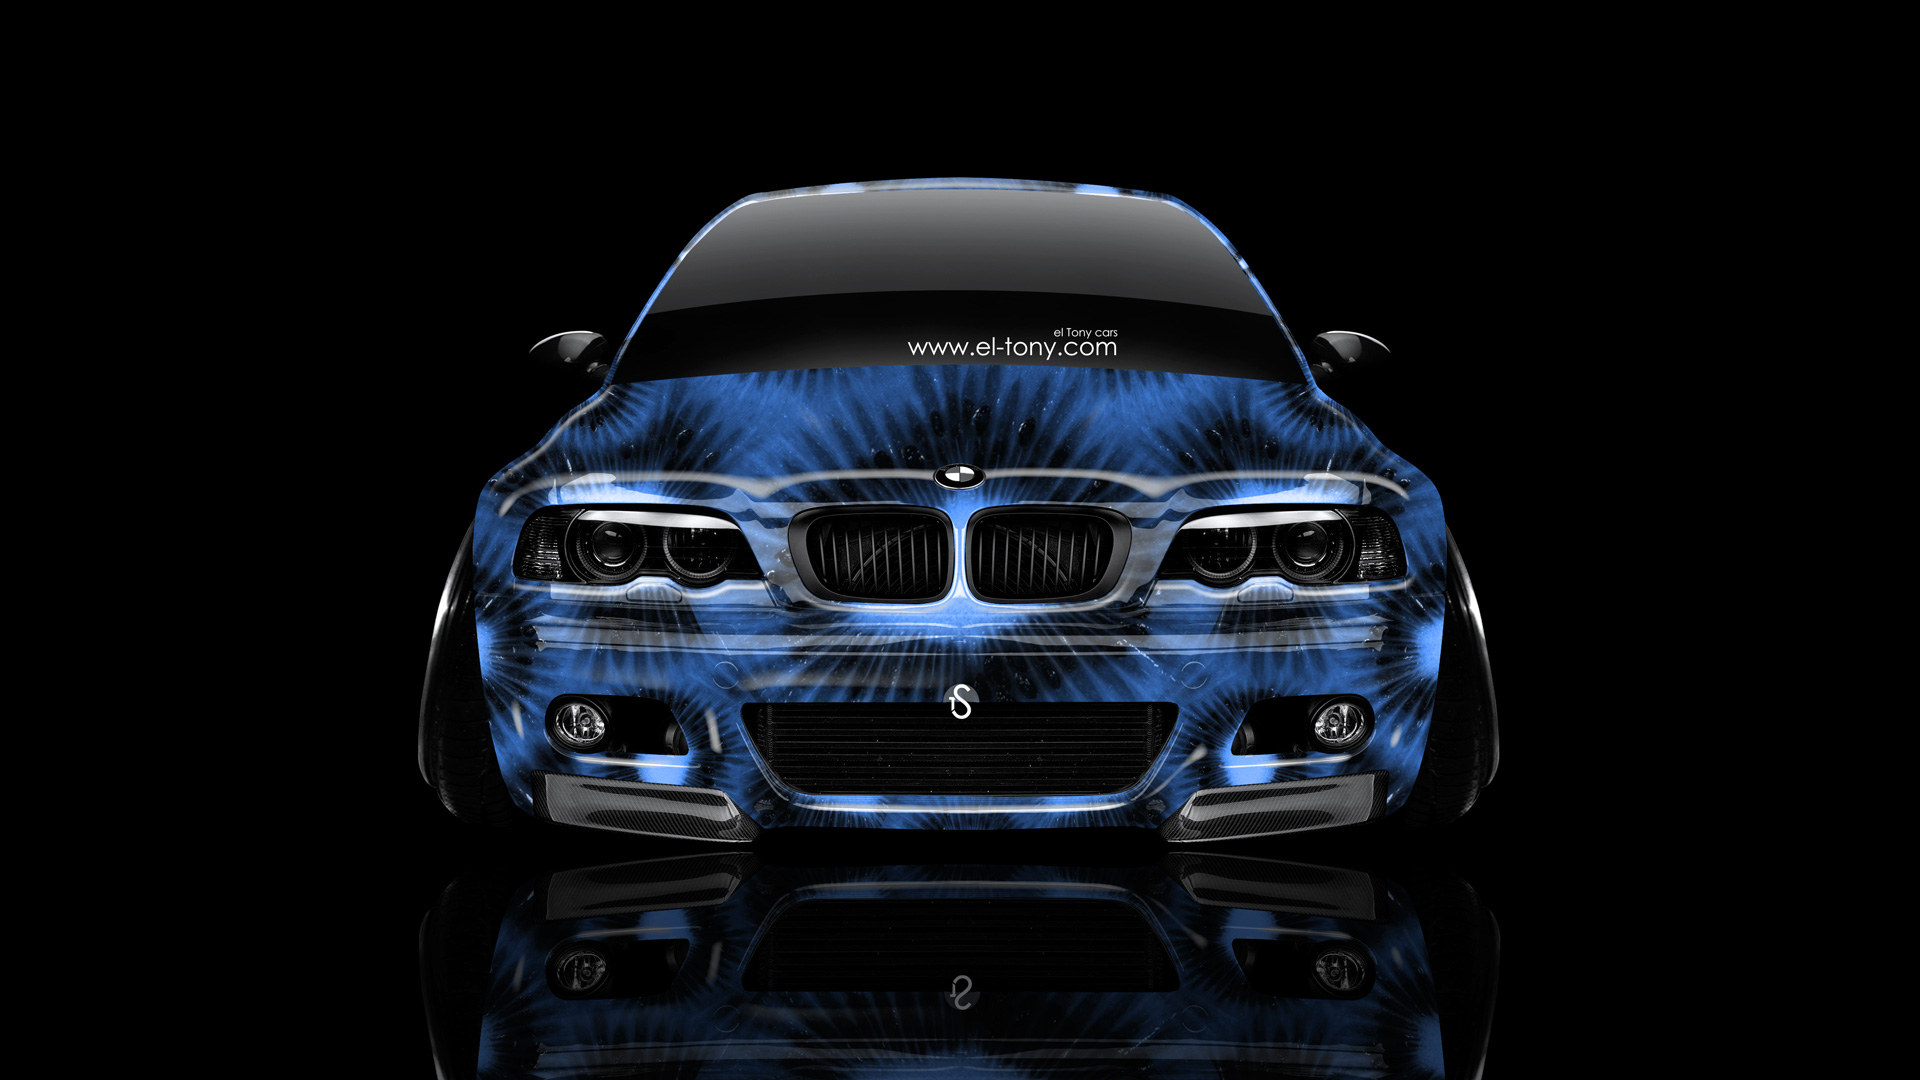 Bmw M3 E46 Front Kiwi Aerography Car 2014 El Tony